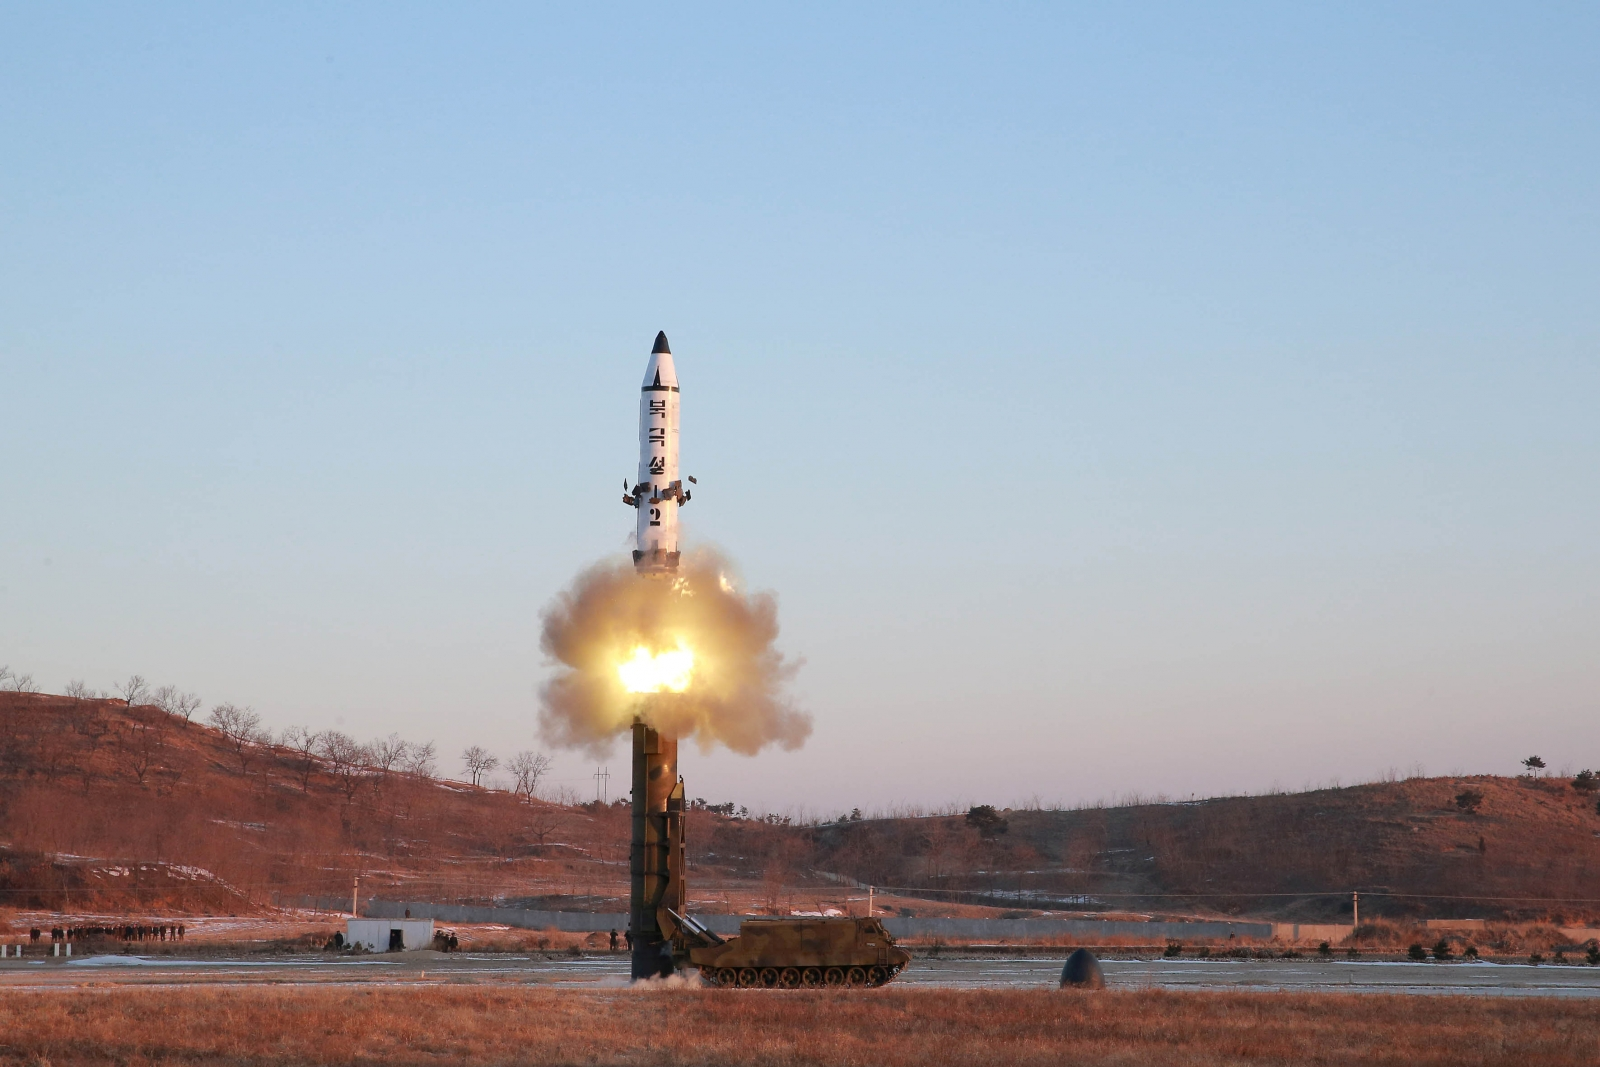 North Korea says it's ready to mass produce new missile